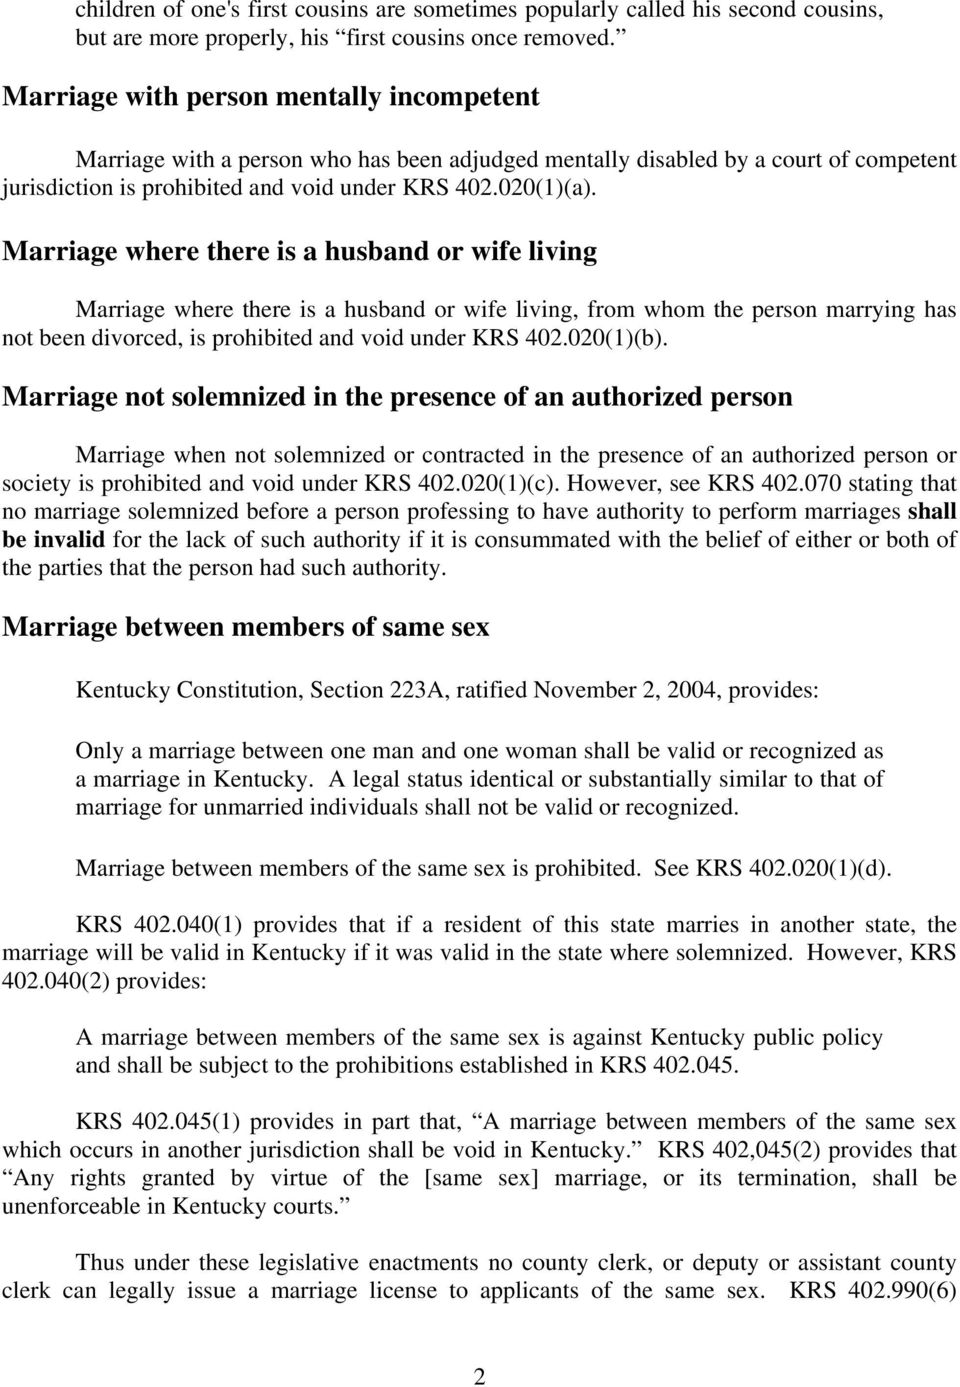 Marriage where there is a husband or wife living Marriage where there is a husband or wife living, from whom the person marrying has not been divorced, is prohibited and void under KRS 402.020(1)(b).